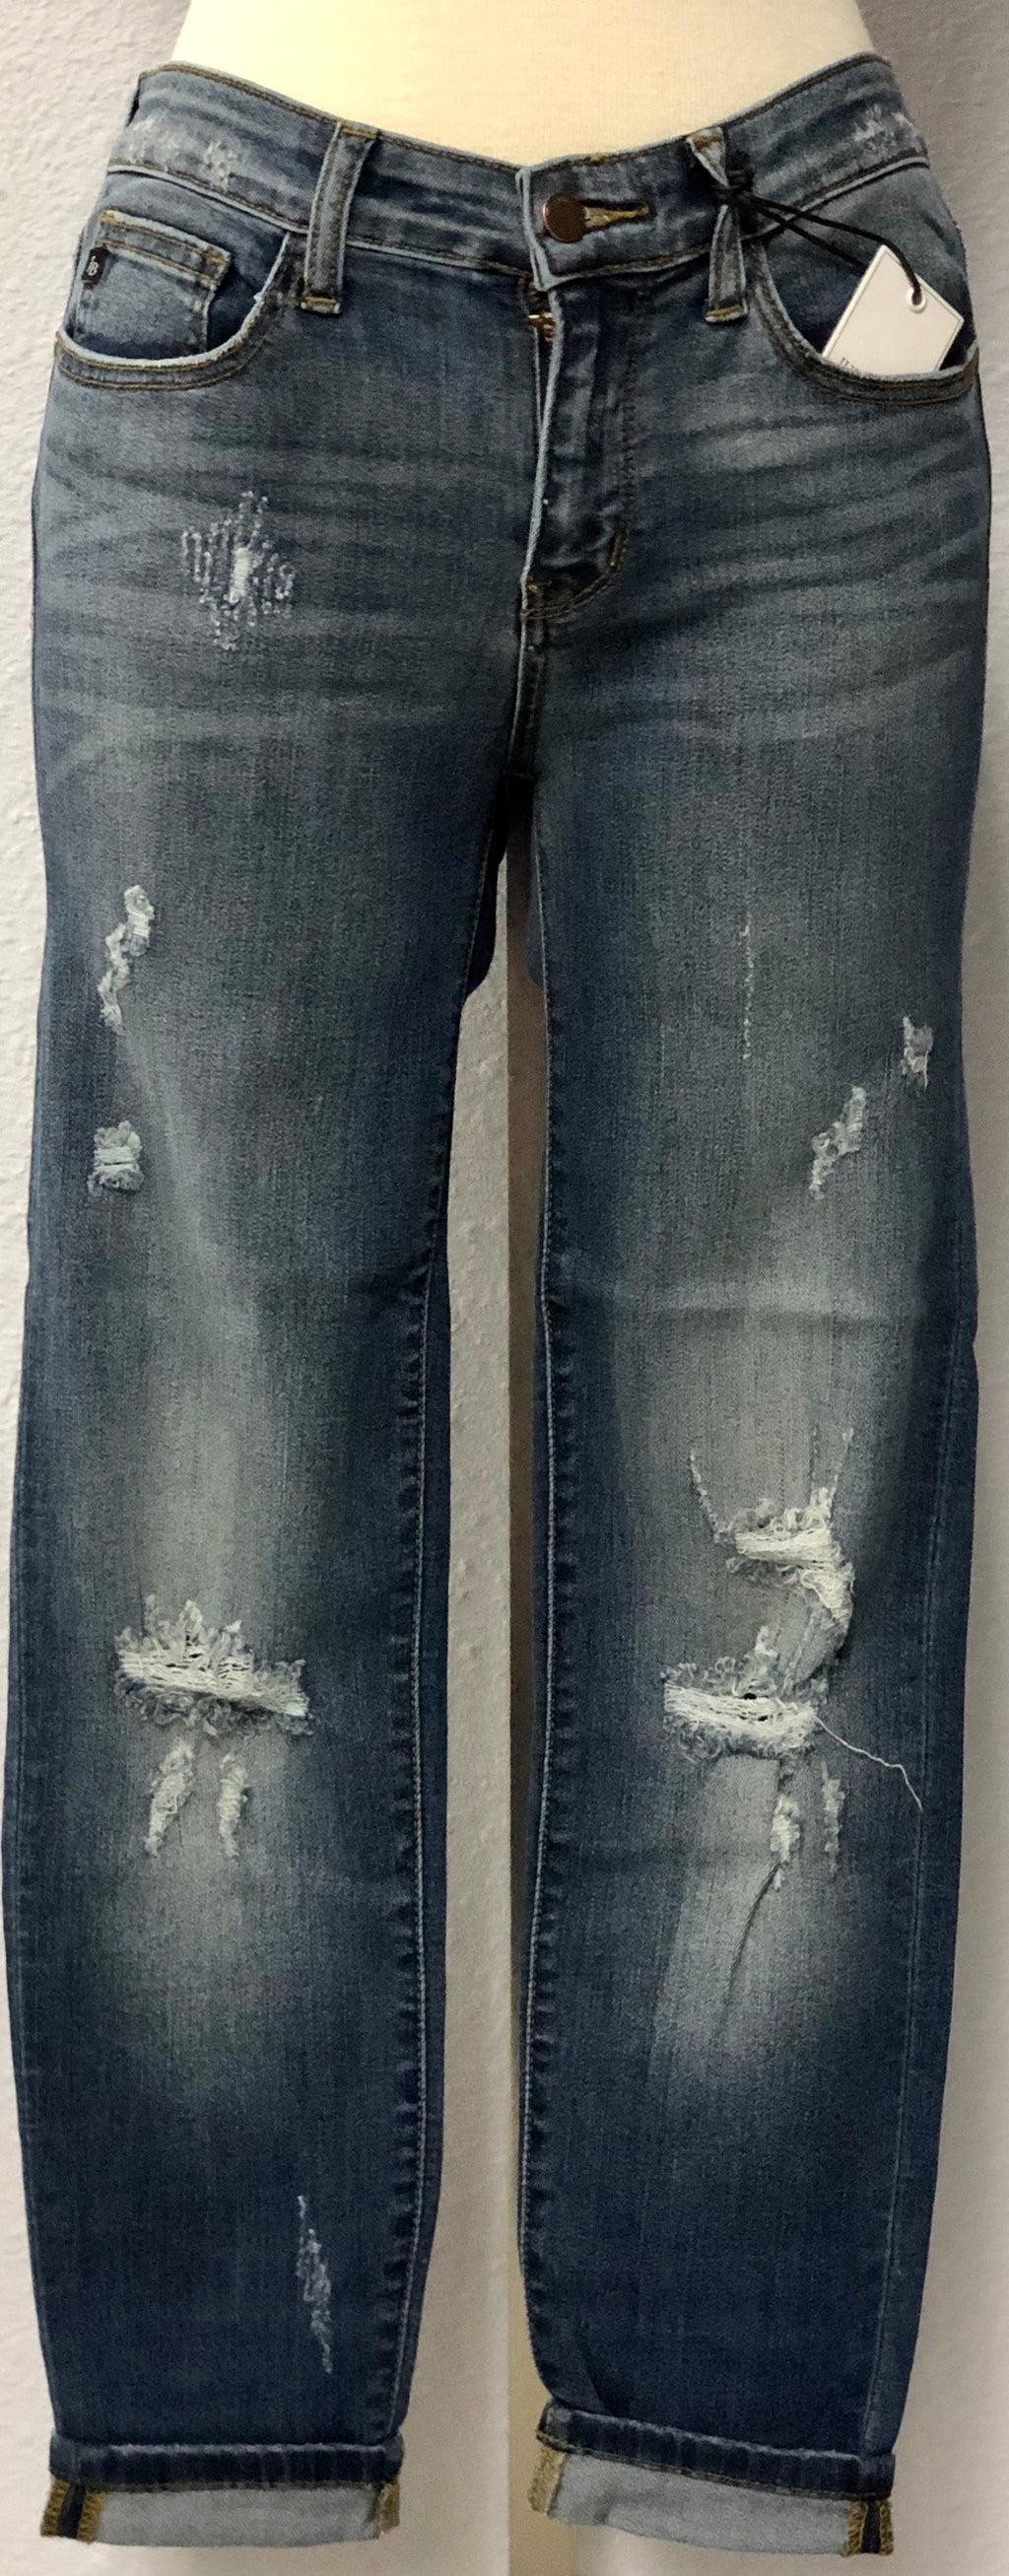 DESTROYED RELAXED FIT JEANS